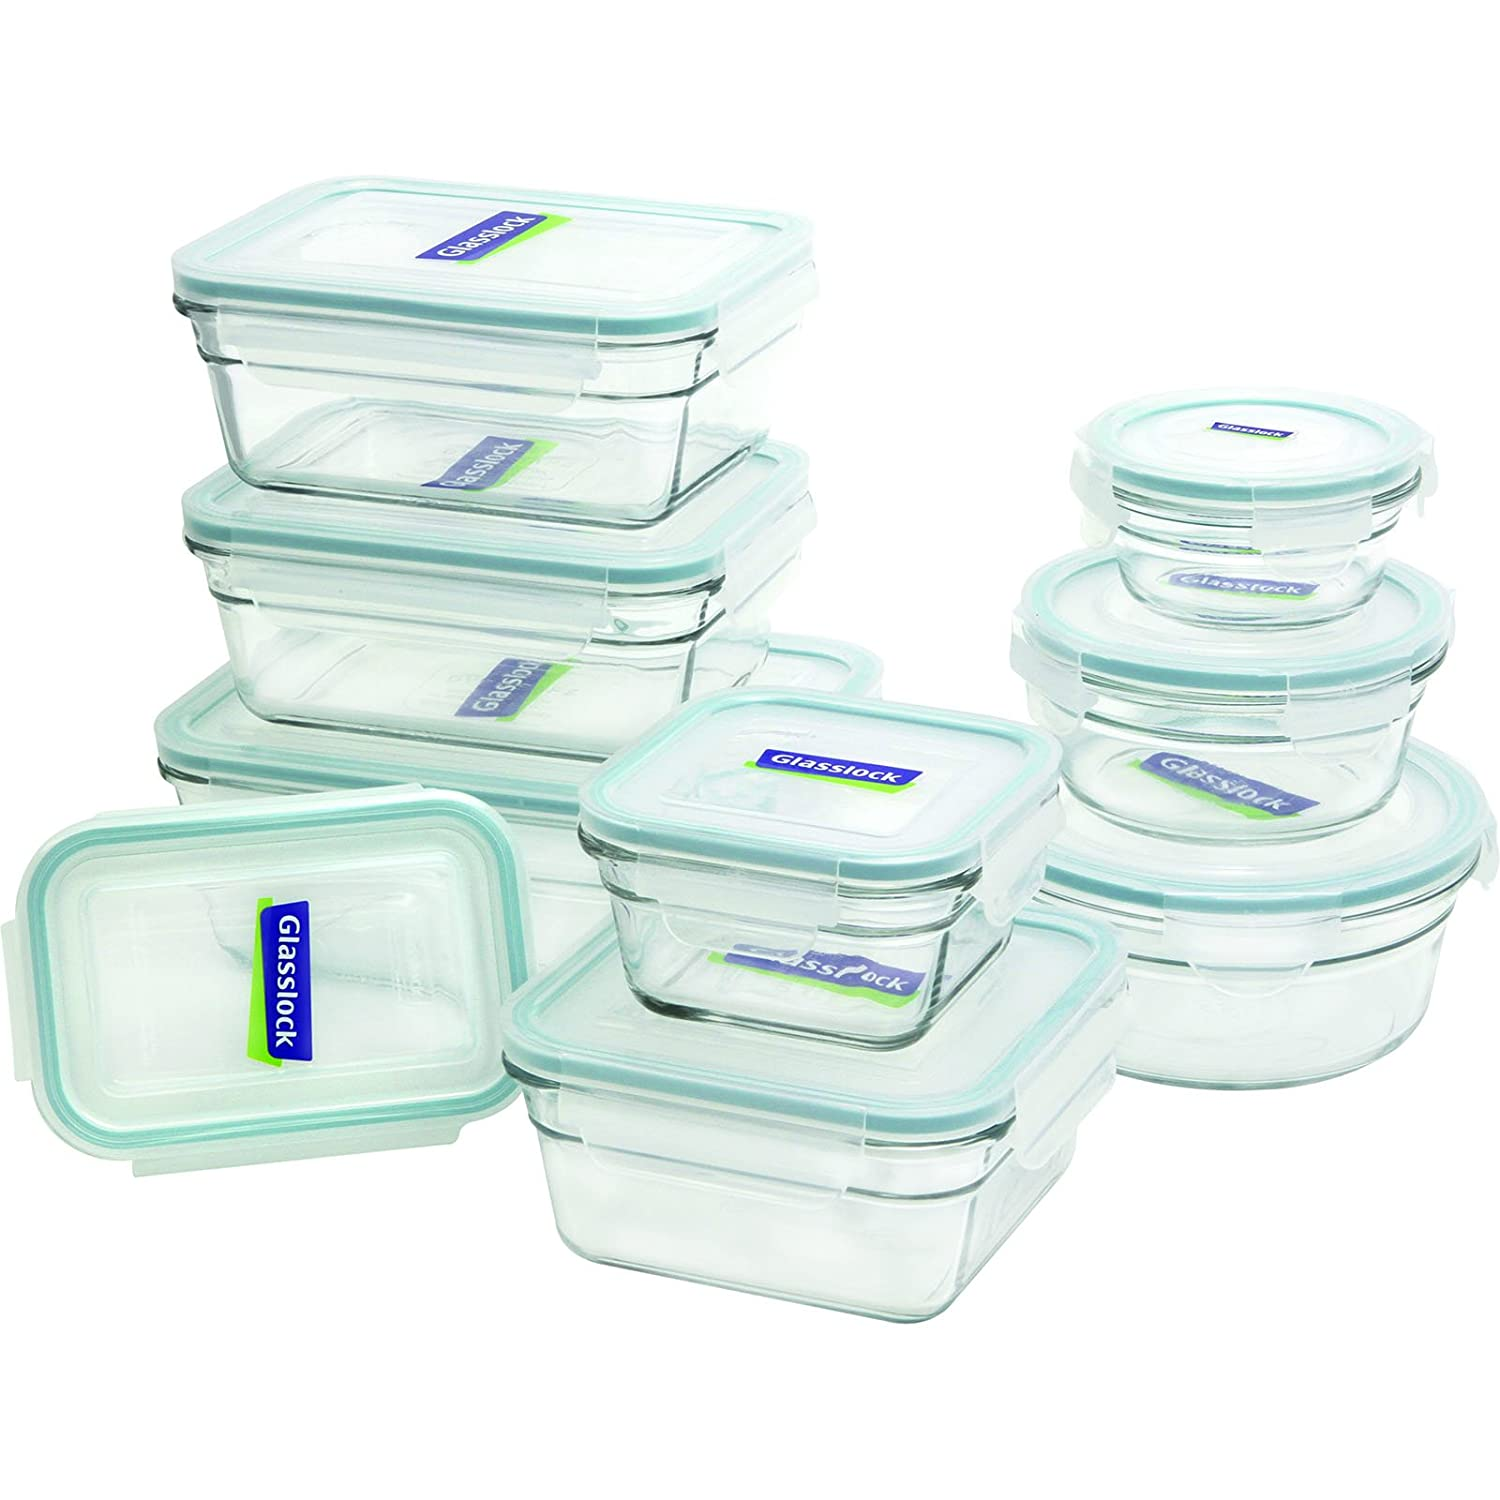 Glasslock 18 Piece Container Set Review